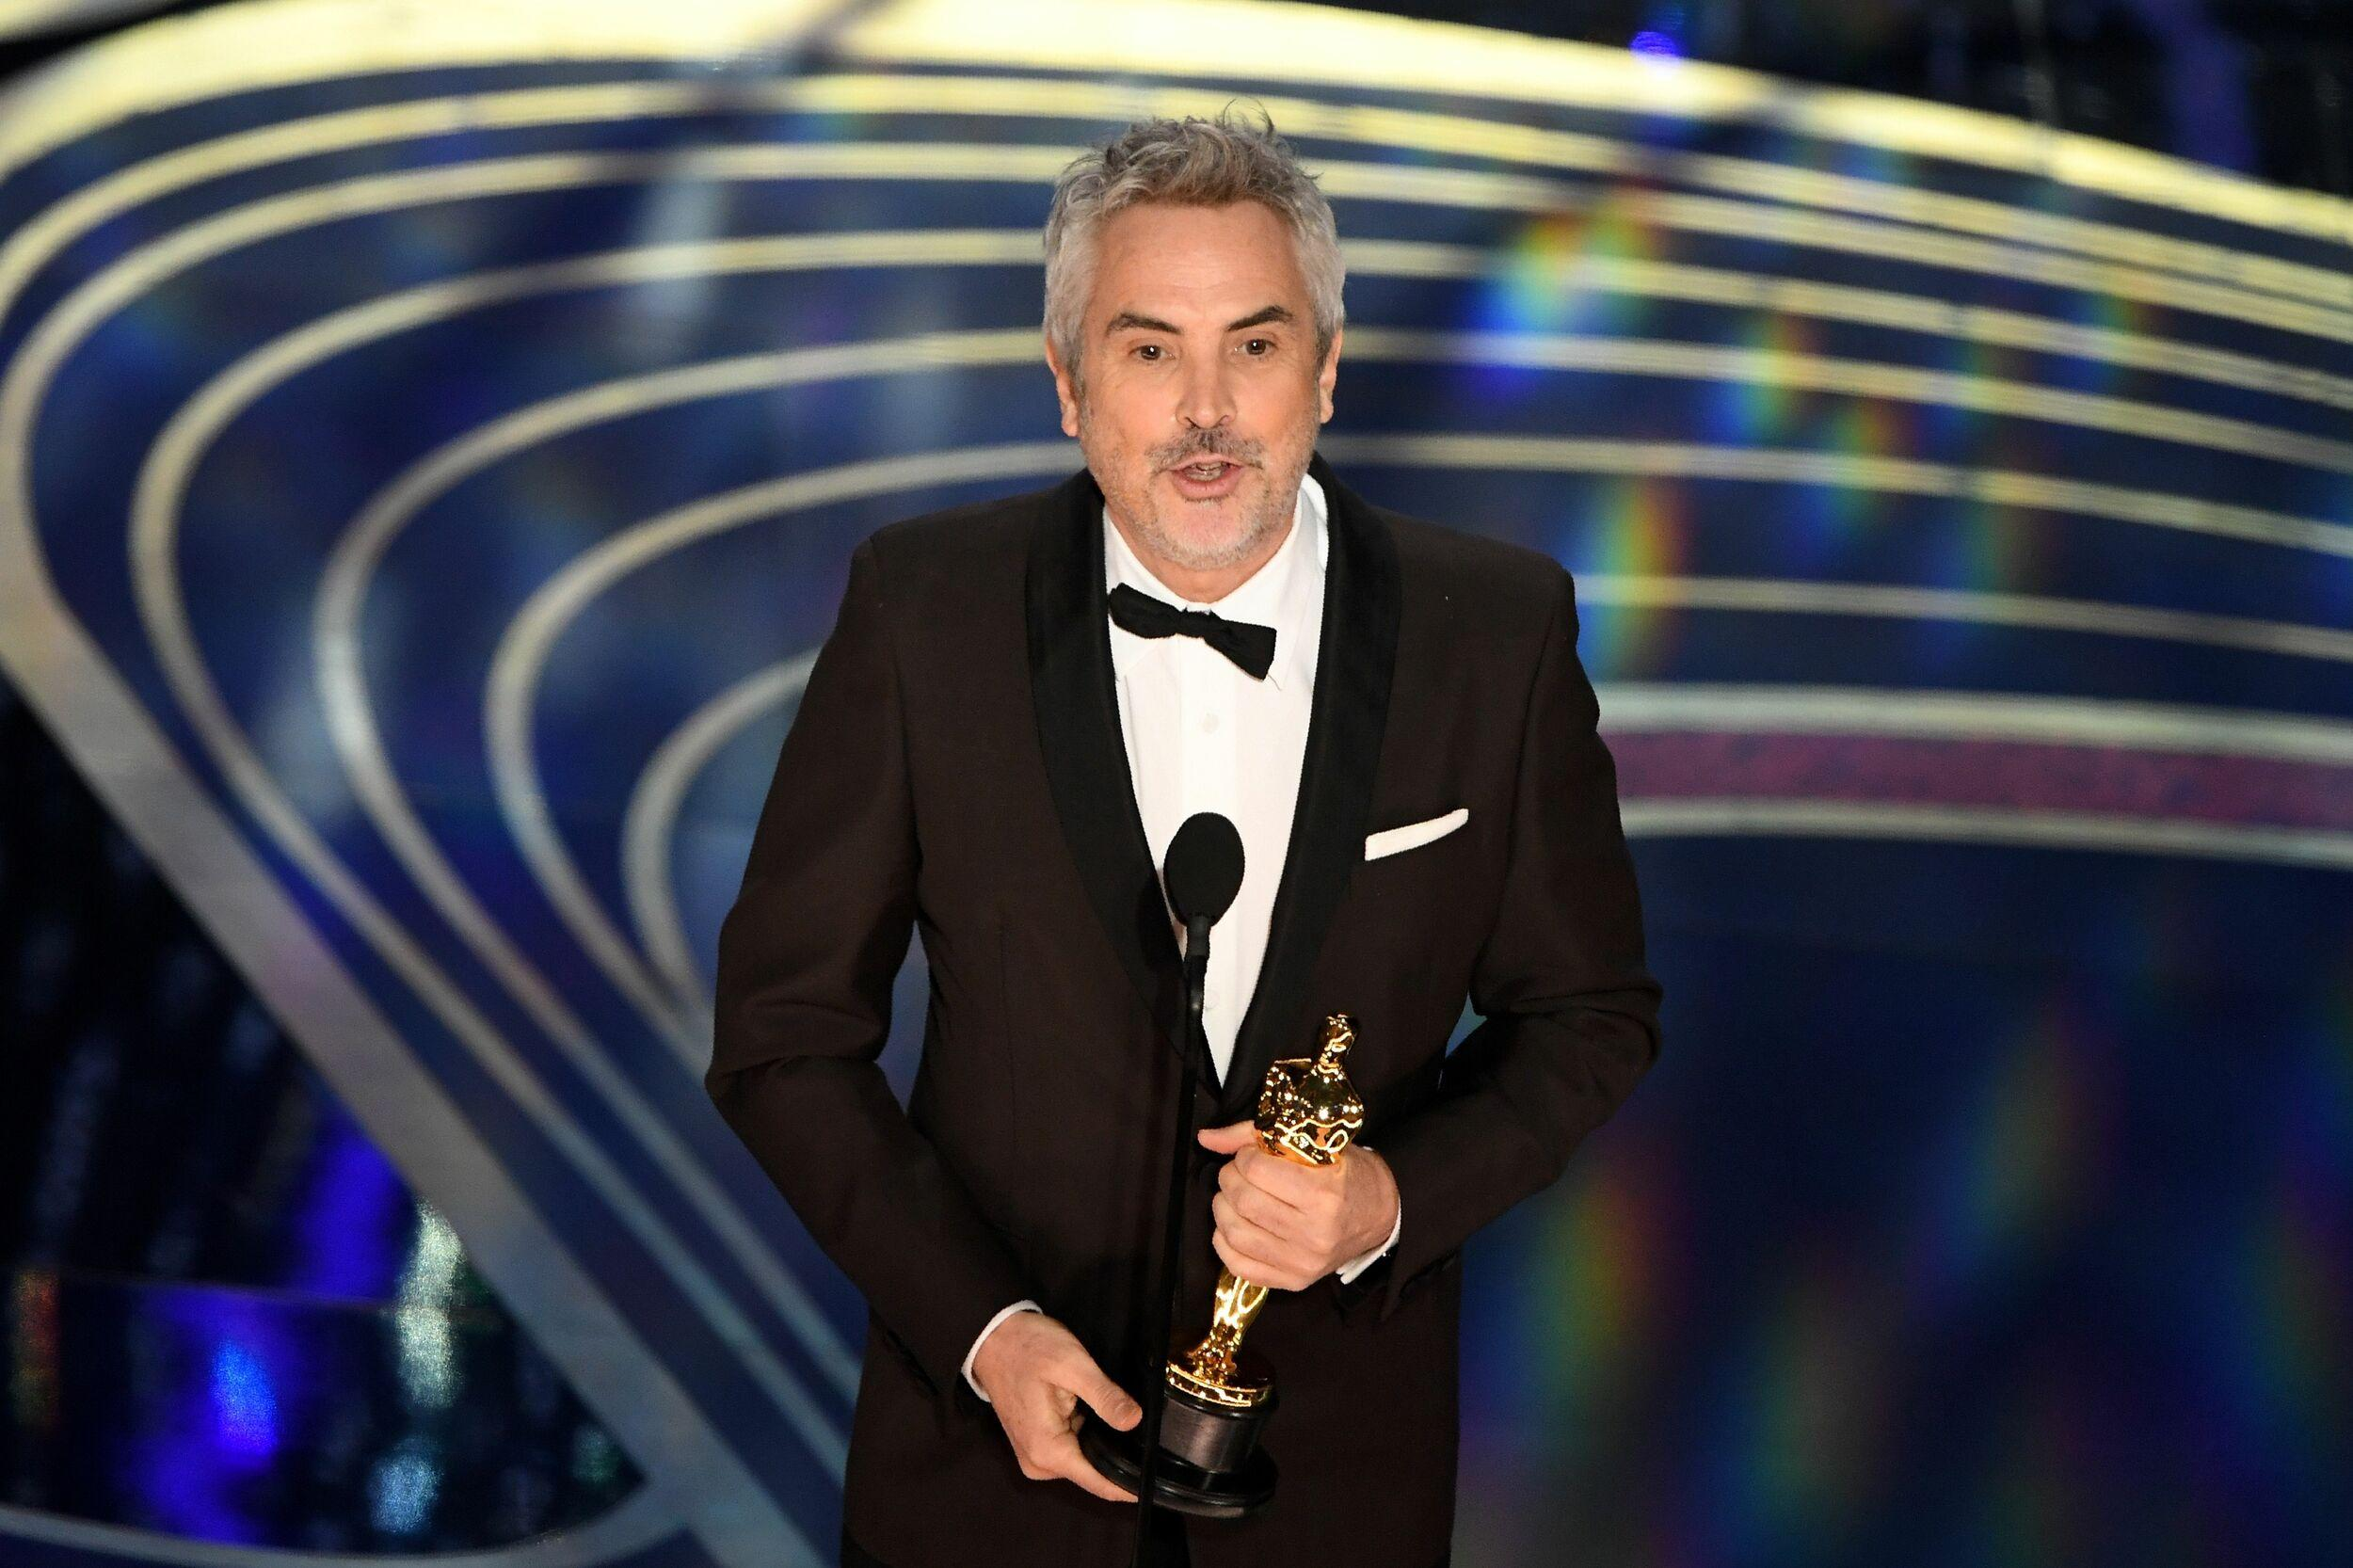 Best Cinematography nominee for 'Roma' Alfonso Cuaron accepts the award for Best Cinematography during the 91st Annual Academy Awards at the Dolby Theatre in Hollywood, California on February 24, 2019. (Photo by VALERIE MACON / AFP)        (Photo credit should read VALERIE MACON/AFP/Getty Images)